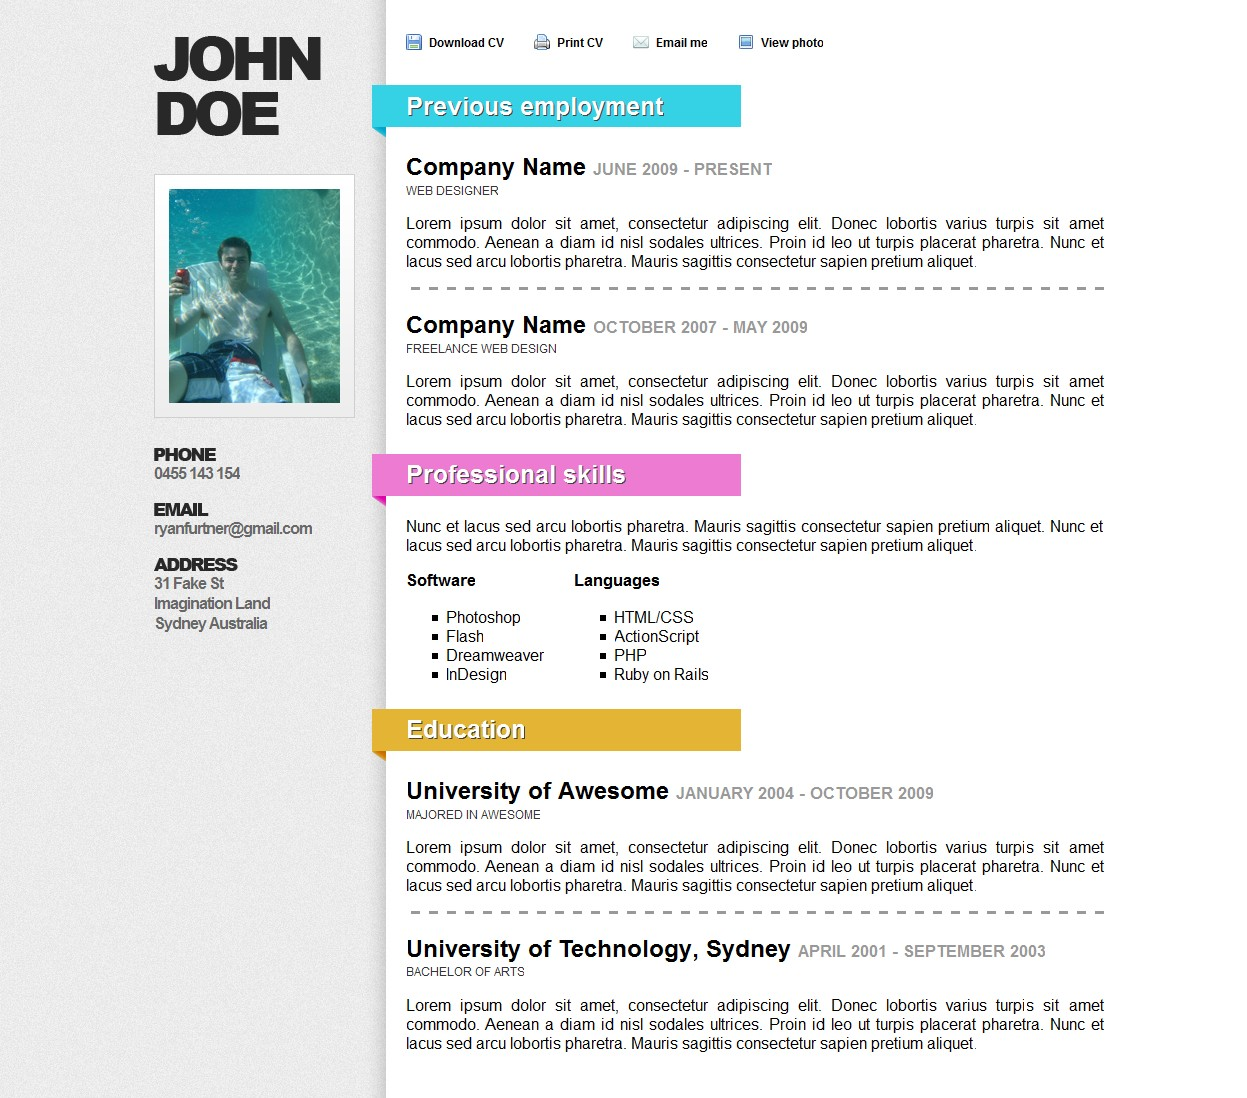 Awesome Online Resume/CV - This is the full Resume/CV with colored ribbon headings. there are a few different colors to choose from or the default gray ribbons.